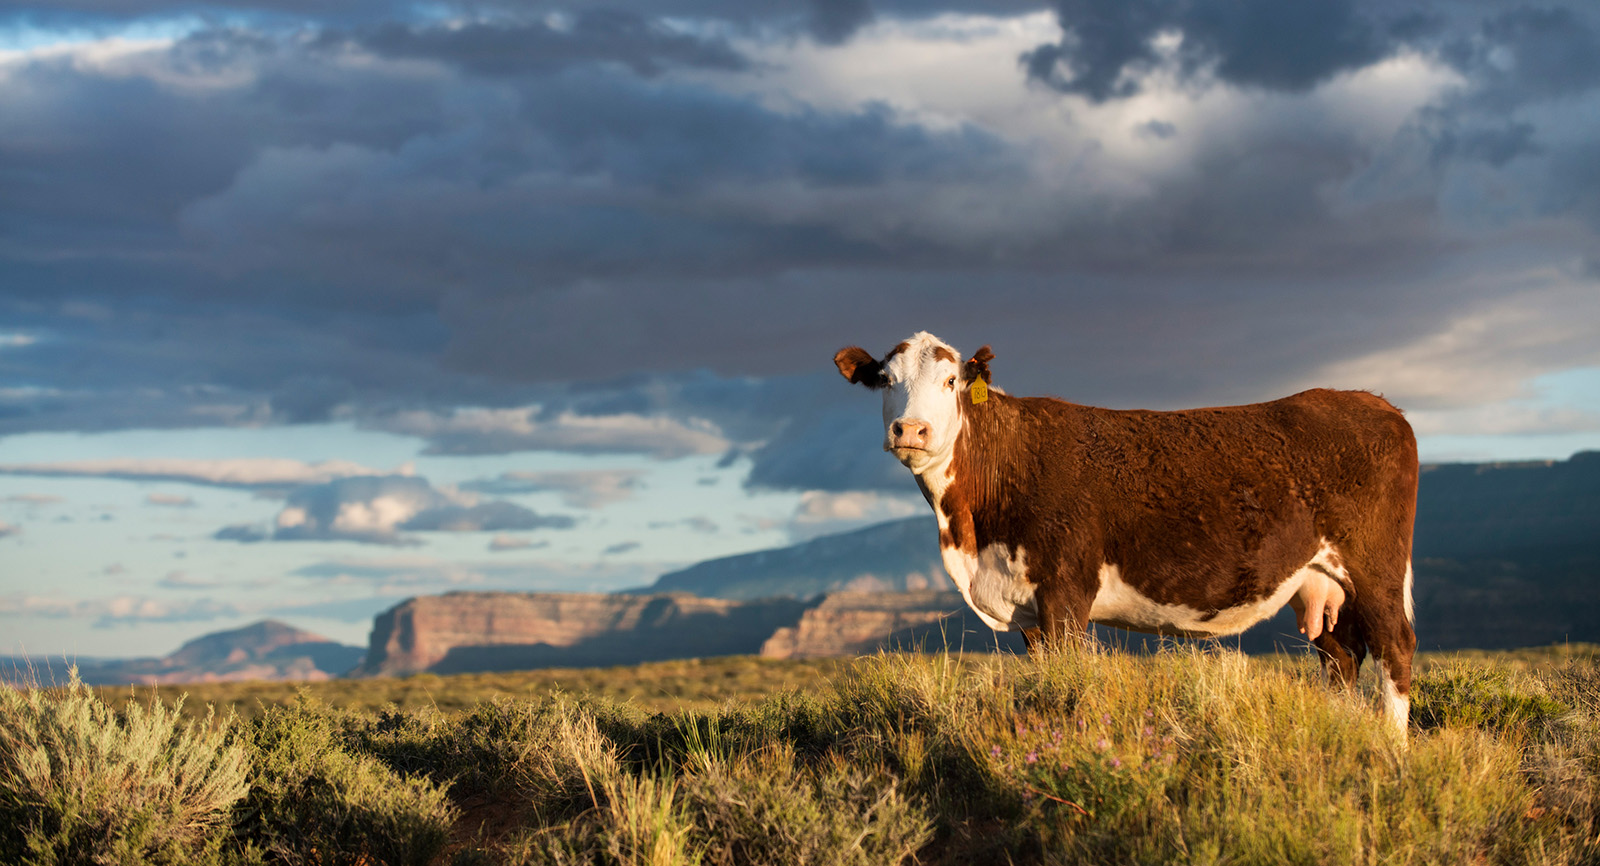 Cow stands in the open range. Photo by James and Jenny Tarpley.